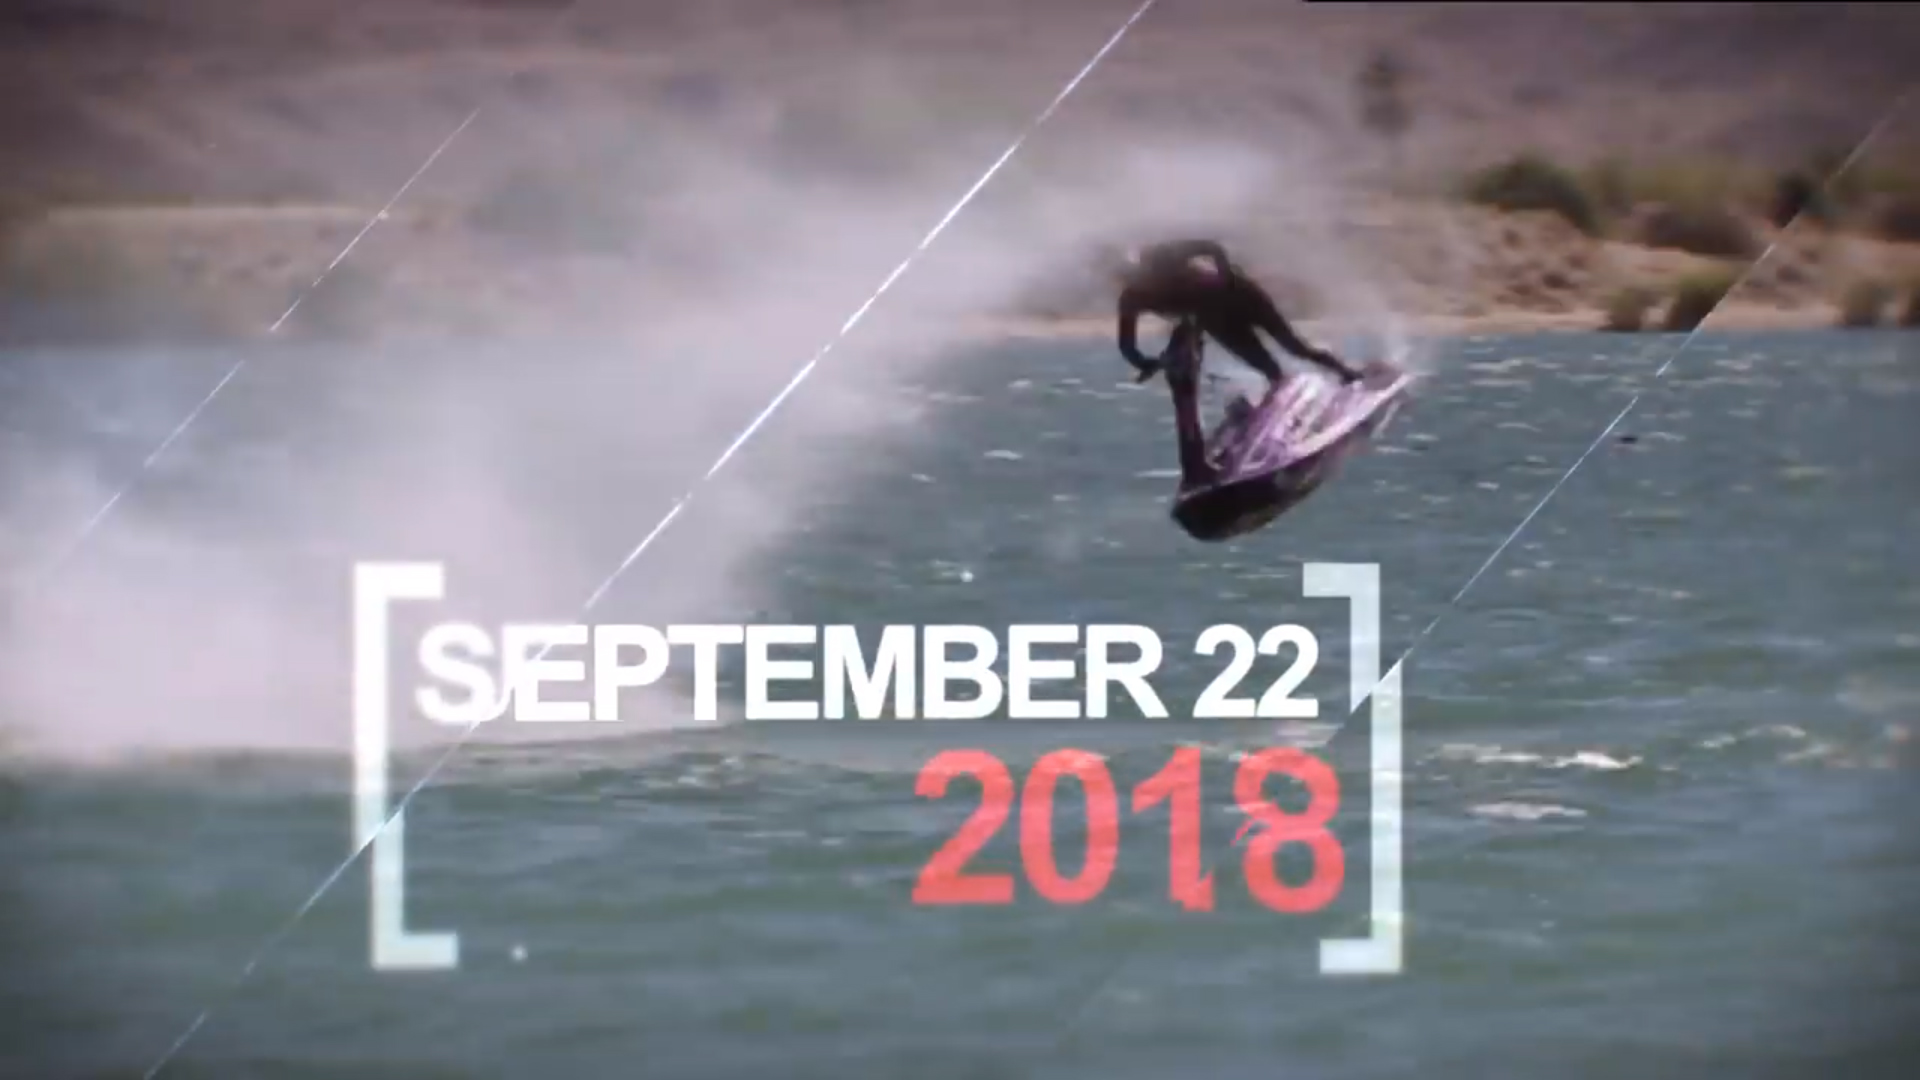 video-teaser-for-fall-round-of-2018-lee-stone-products-u-s-freestyle-championship-september-22nd-lake-havasu-city-arizona